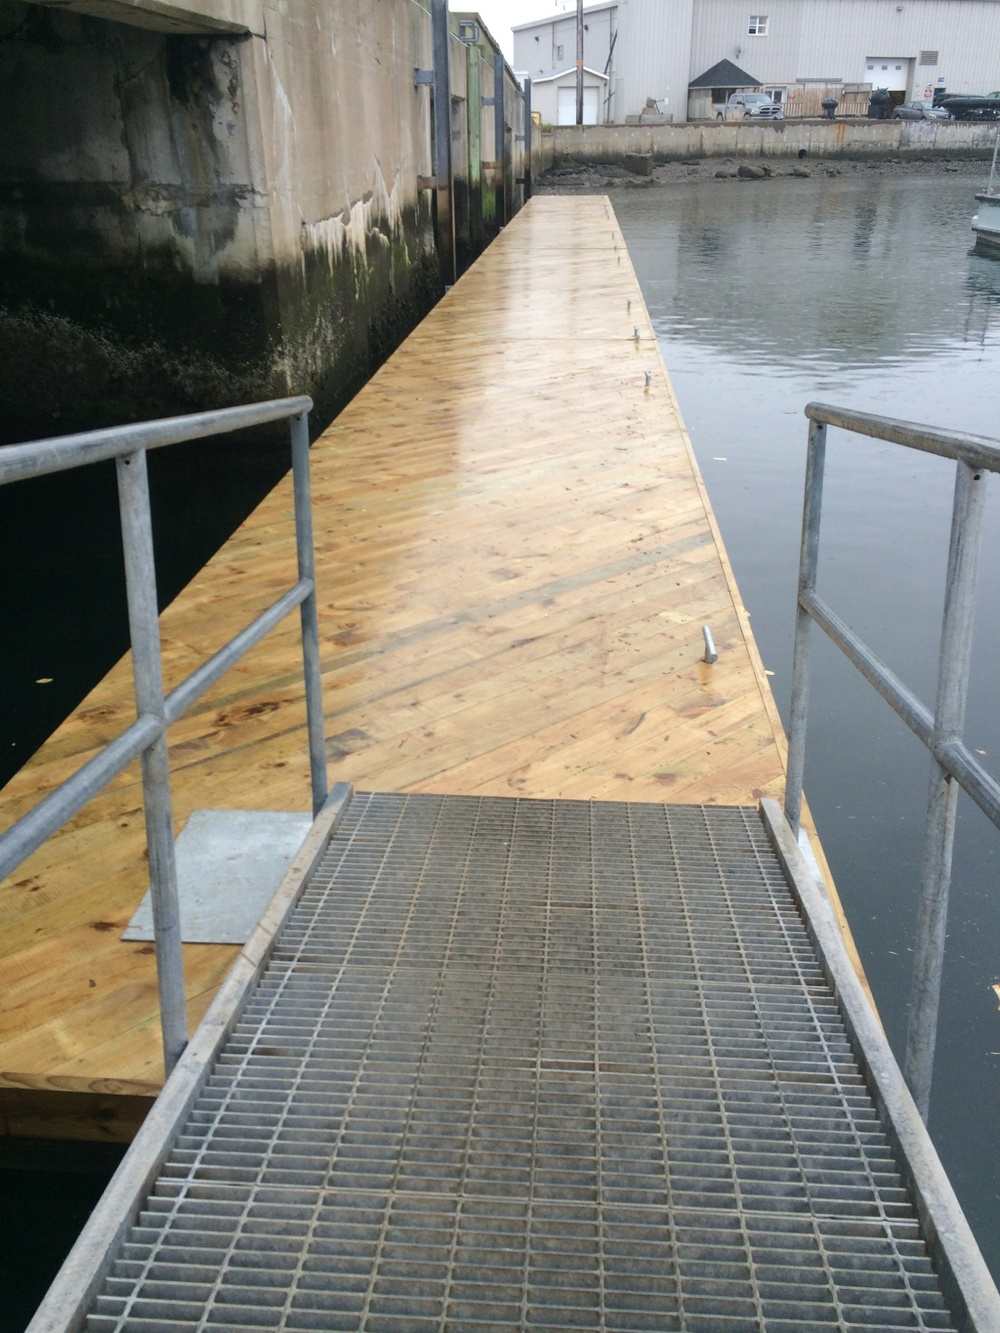 Floating Dock System, DND Fleet Dive Unit, Shearwater, NS